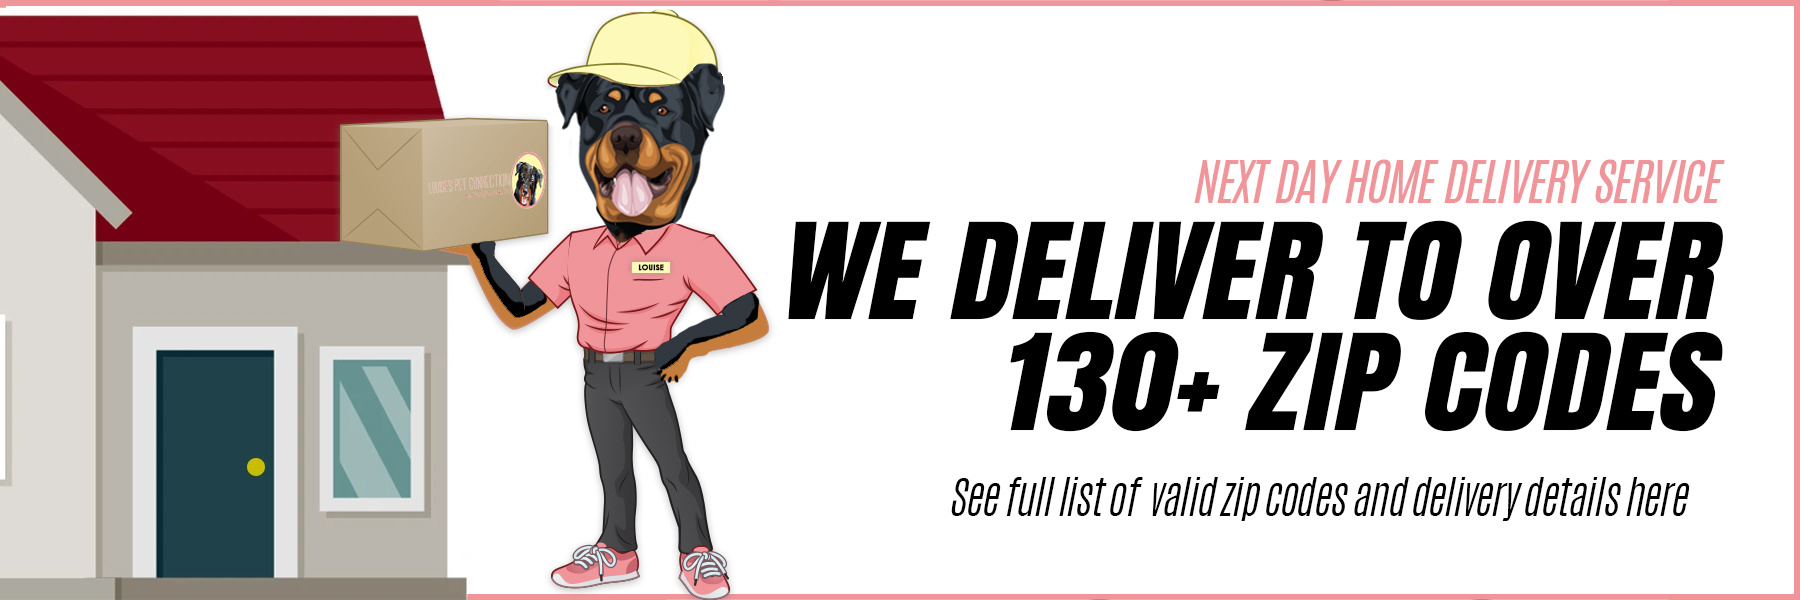 home delivery banner